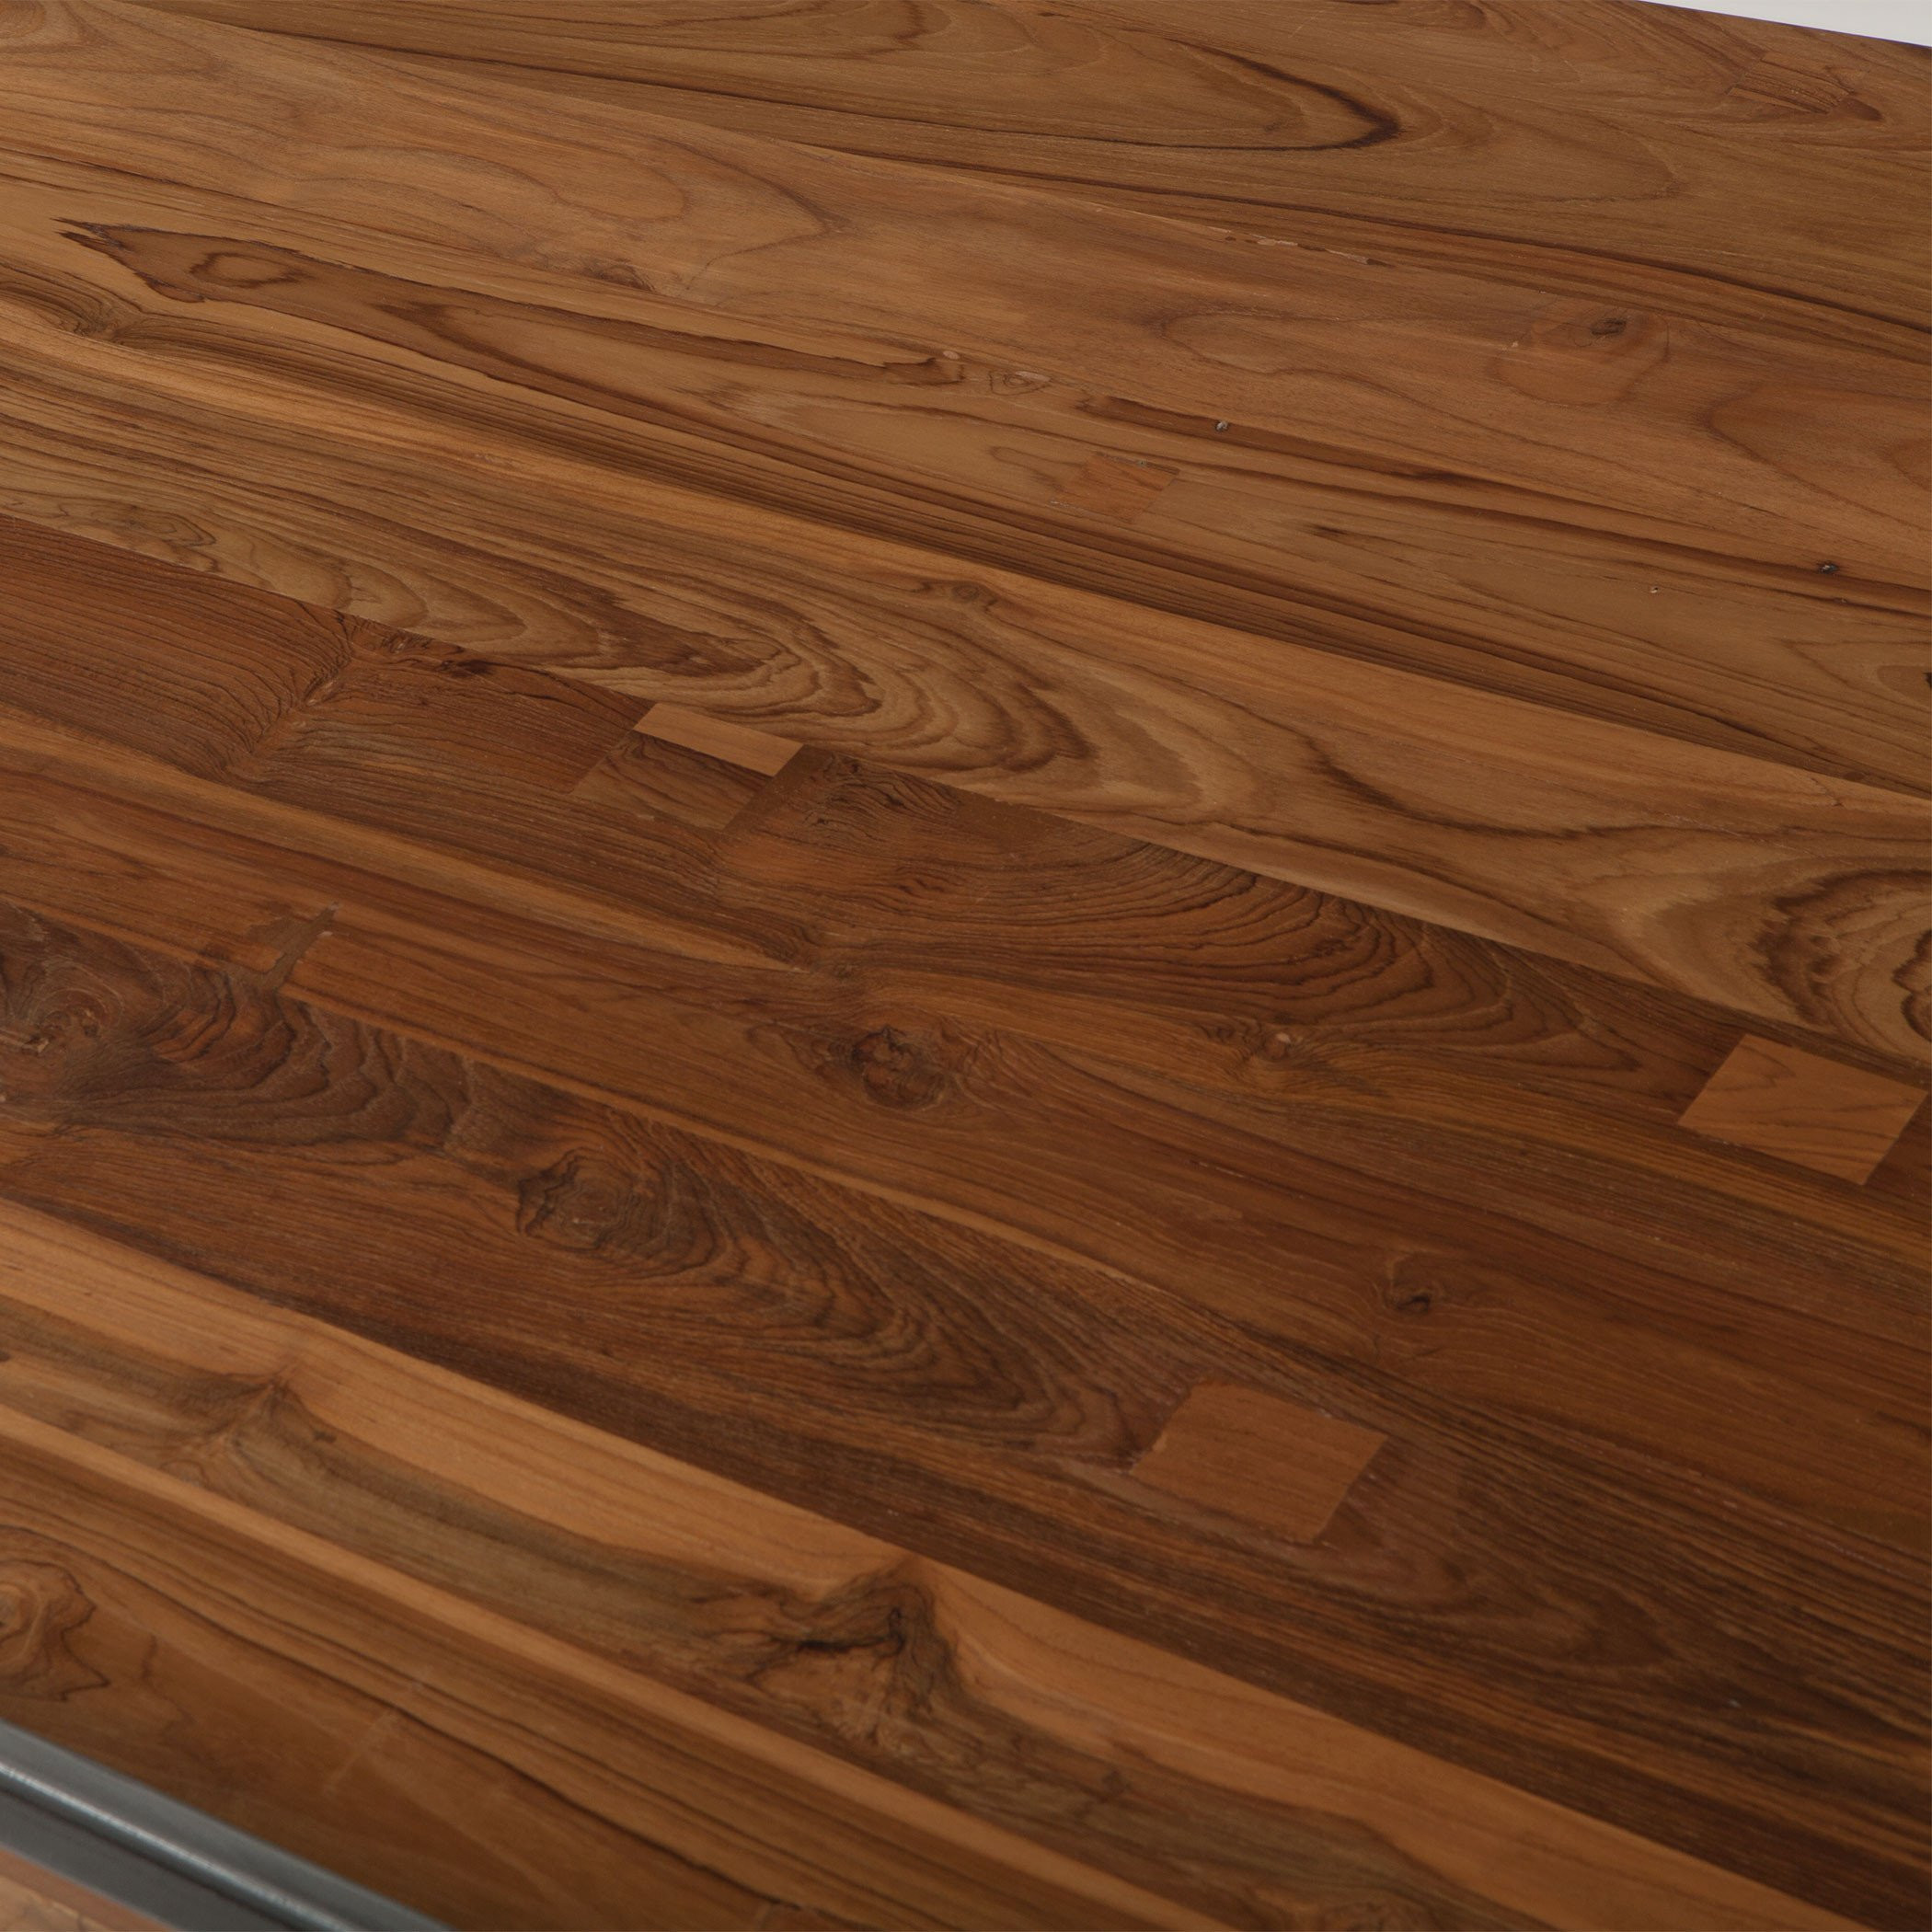 teak hardwood flooring reviews of desks world interiors within artezia natural teak wood table desk world interiors